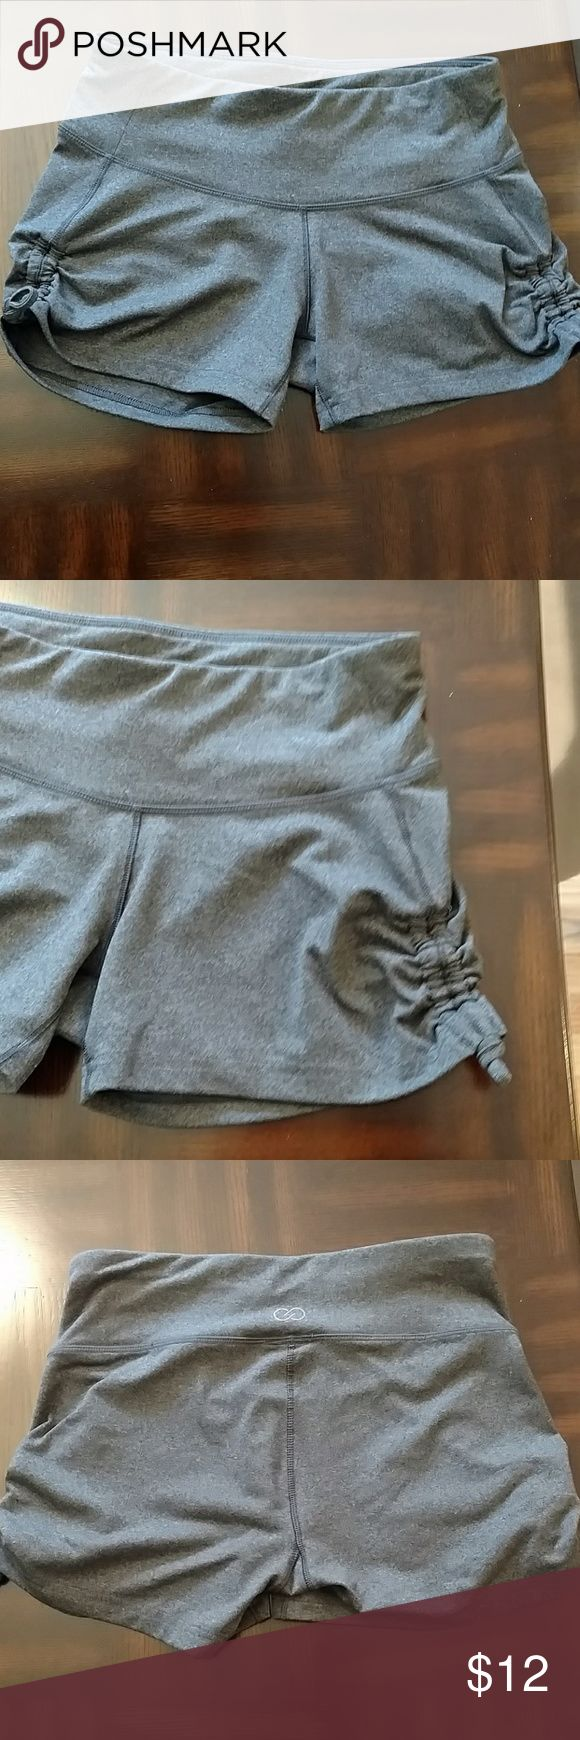 CALIA (by Carrie Underwood) Gray Athletic Shorts SUPER short (so high thigh area) Gray spandex​ material Really cute detail on the sides (you can't make the shorts shorter by pulling down the drawstring on the side!) CALIA by Carrie Underwood Shorts